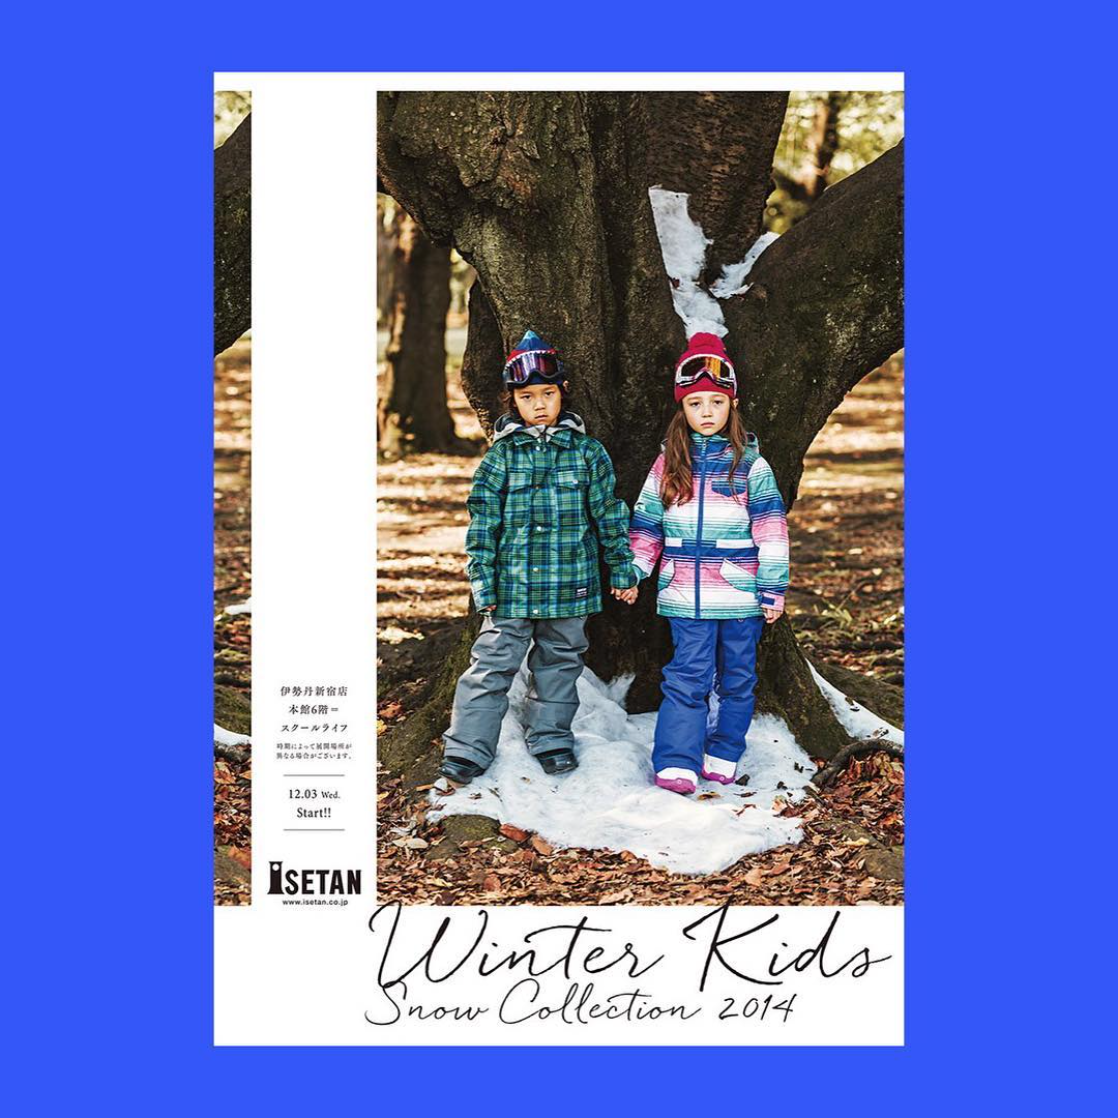 Winter Kids Snow Collection 2014